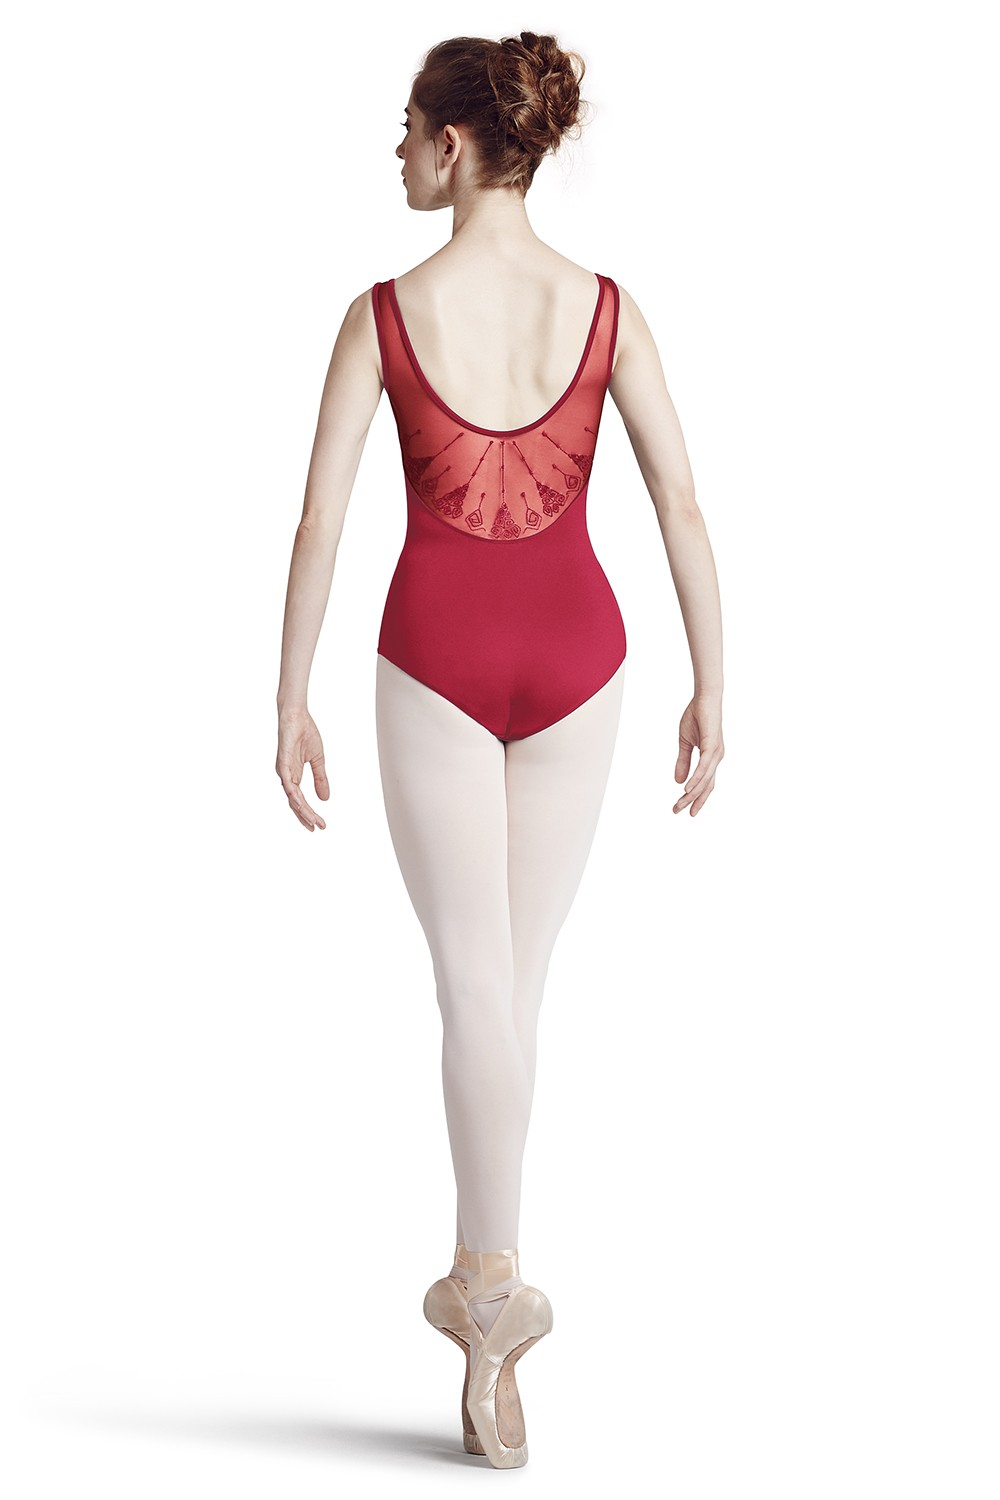 Ivona Women's Dance Leotards